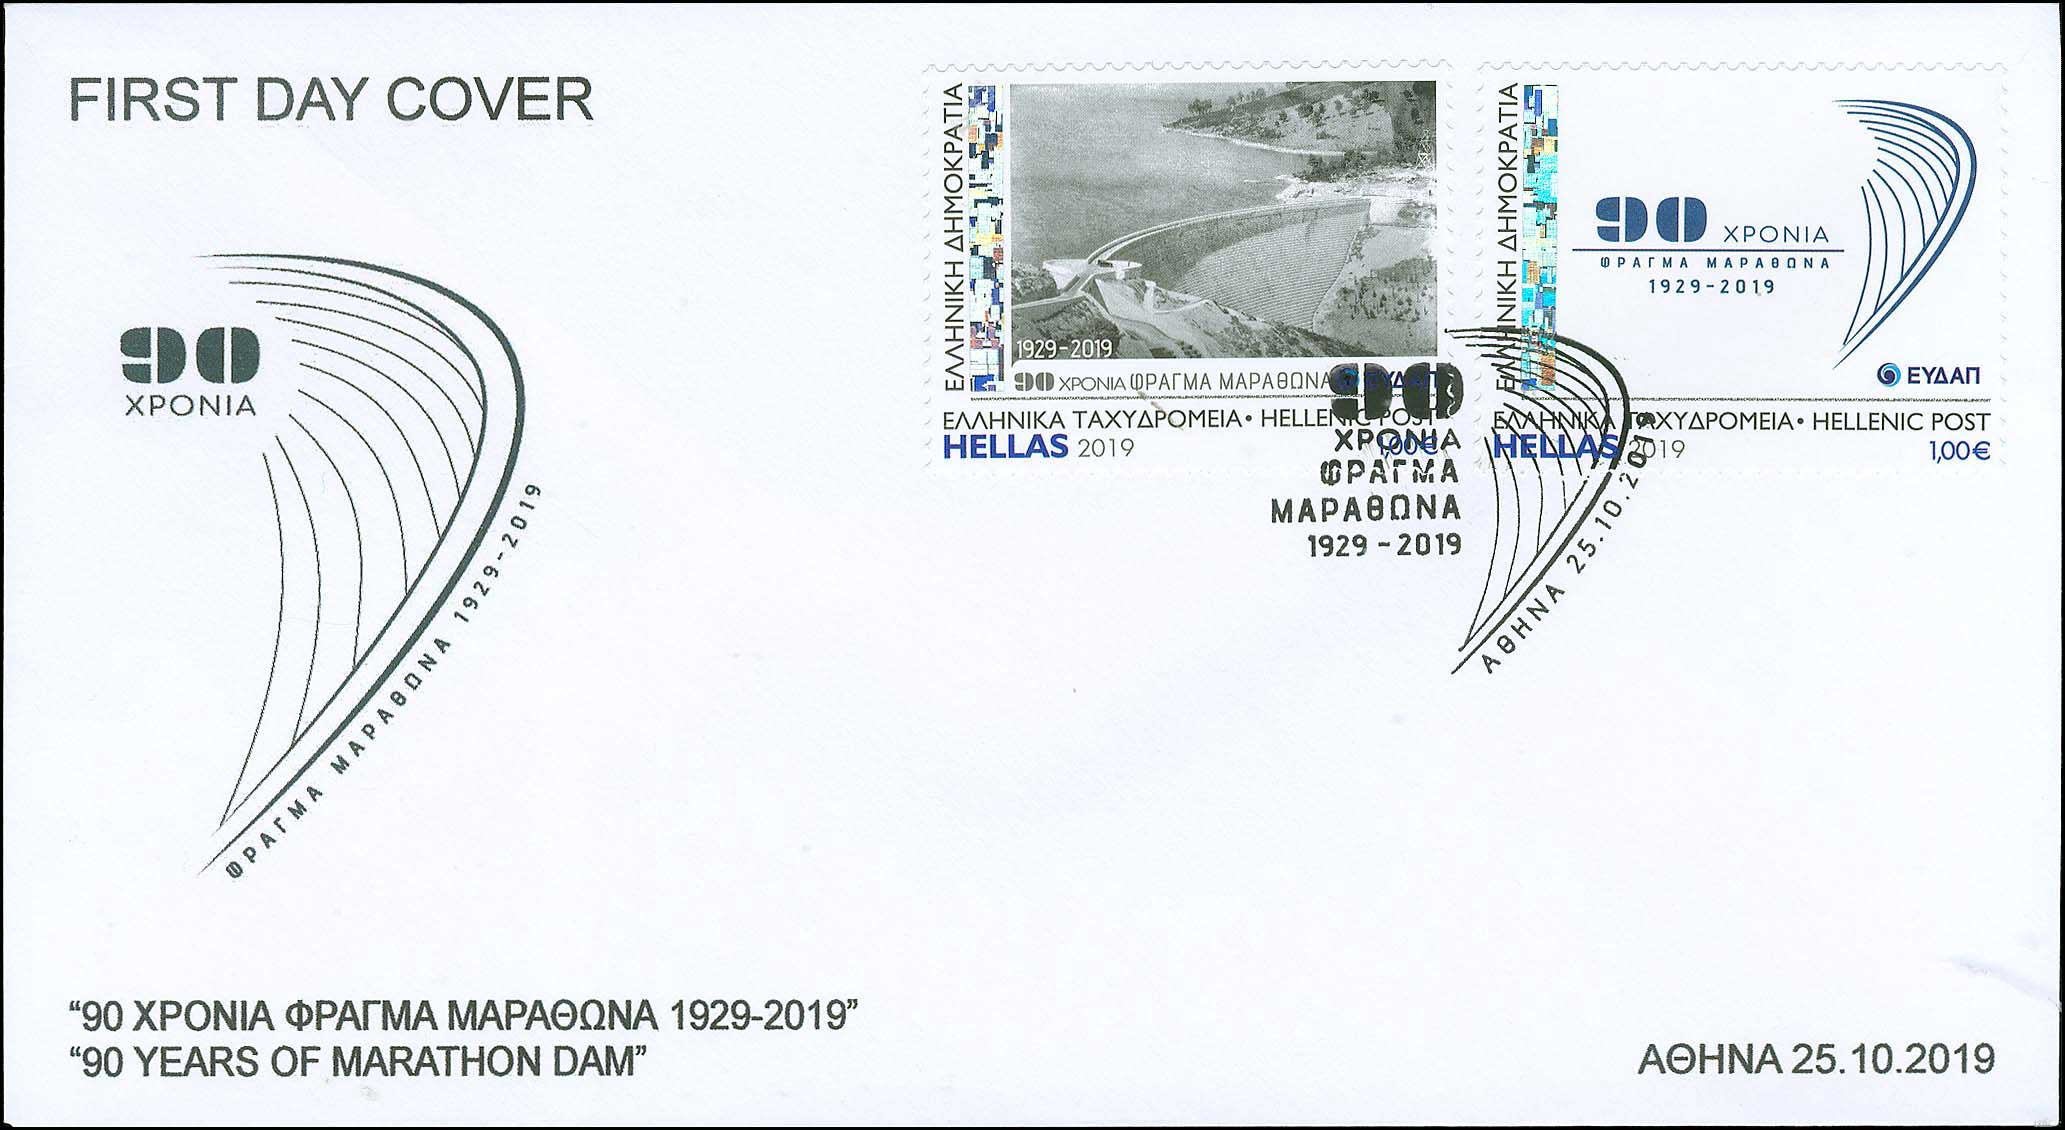 Lot 656 - -  FIRST DAY COVER First day cover -  A. Karamitsos Public Auction 668 General Philatelic Auction